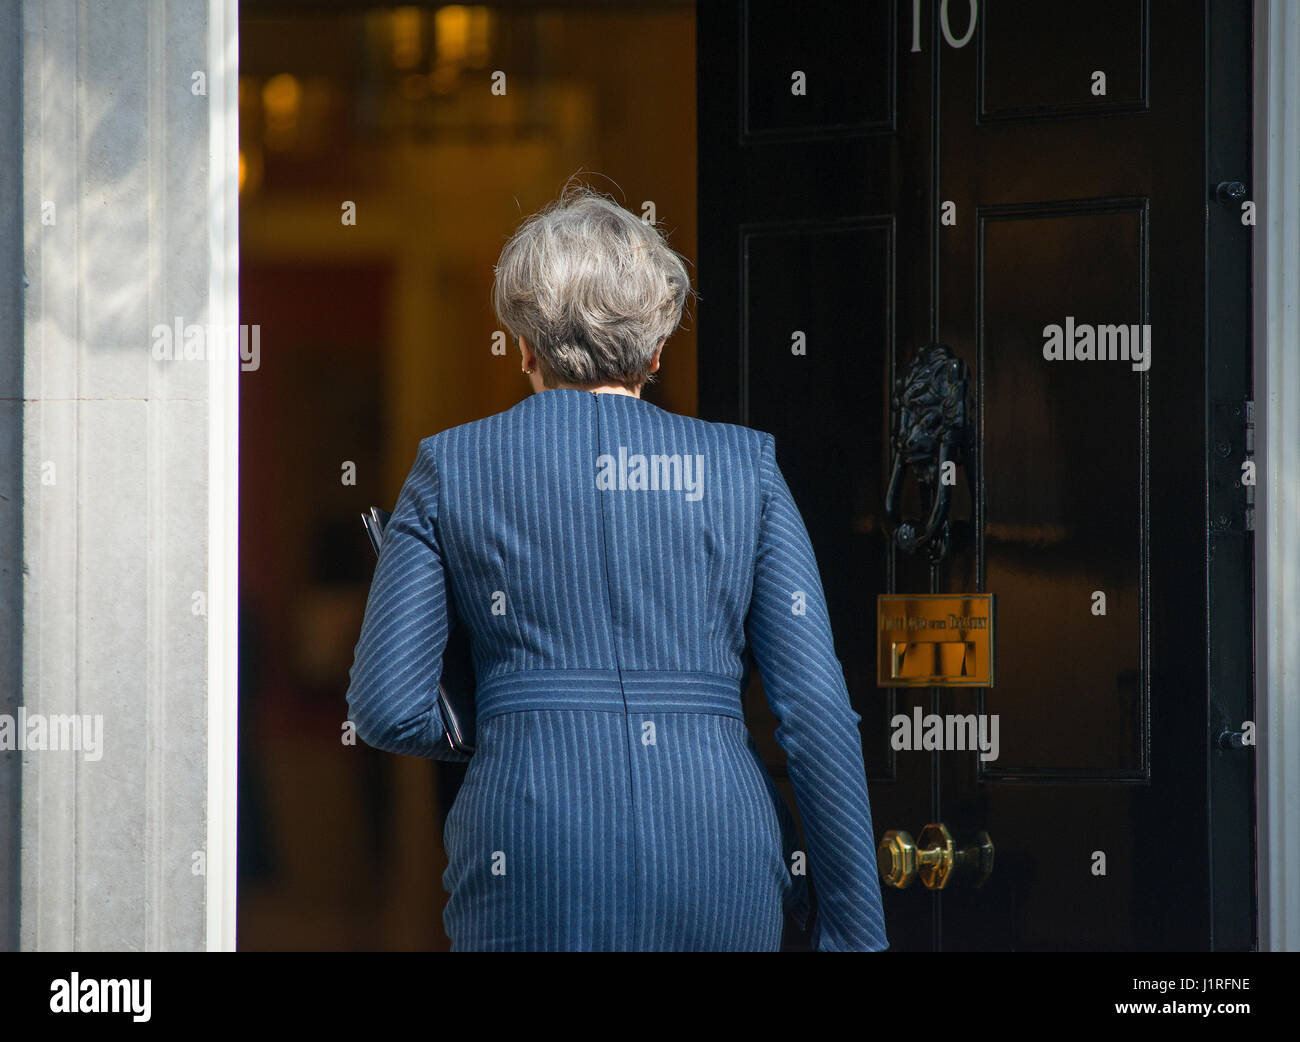 Downing Street, London UK. 18th April, 2017. PM Theresa May enters No 10 after announcings snap general election - Stock Image